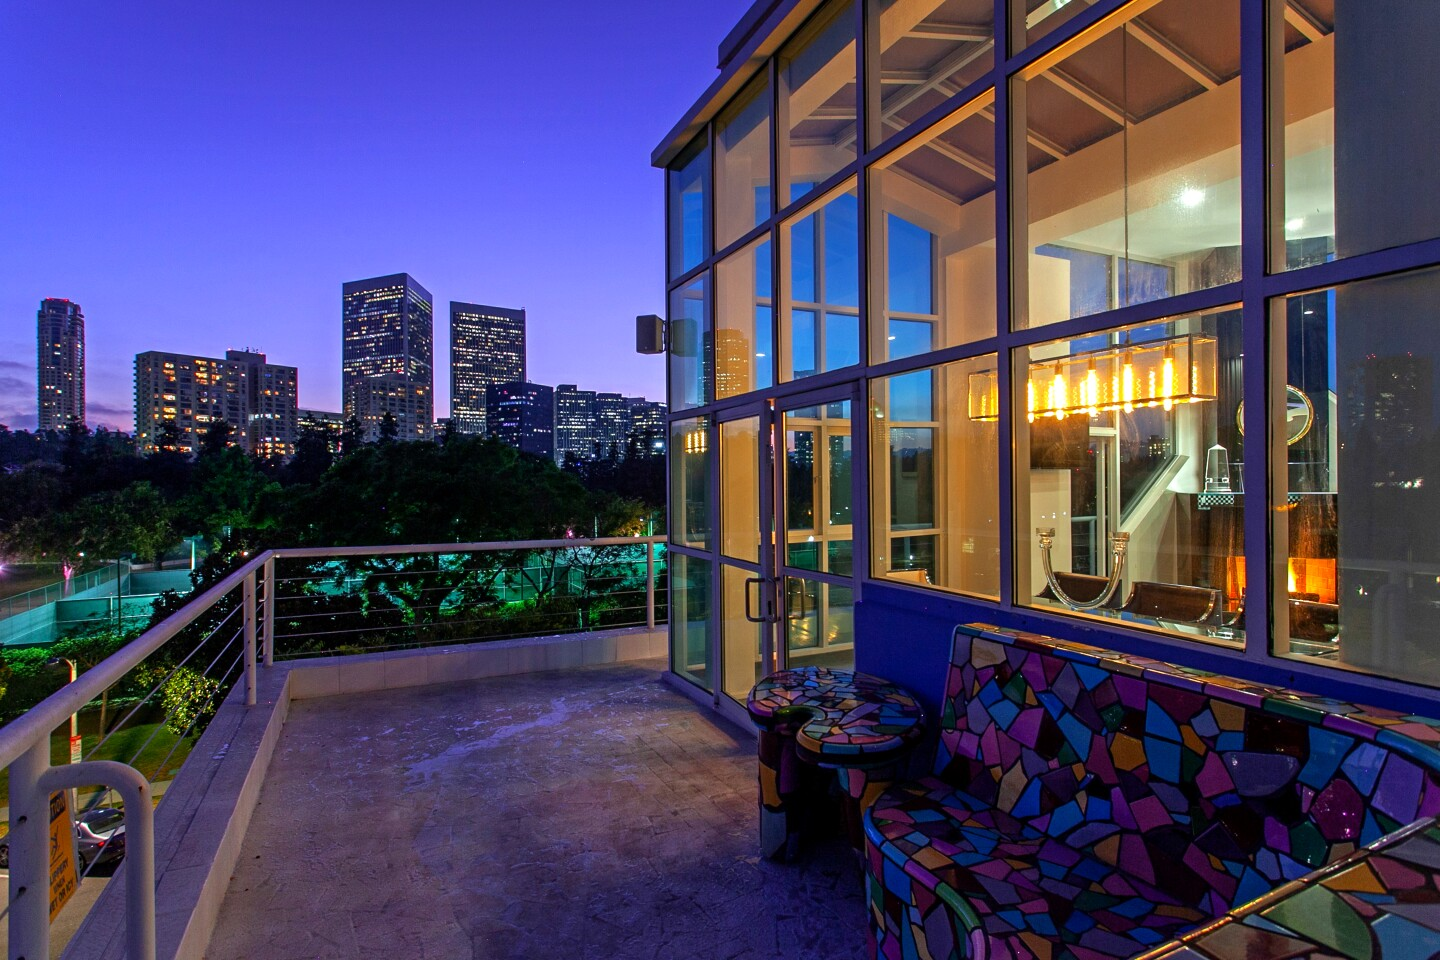 Home of the Week | Frank Gehry's glass box in the sky